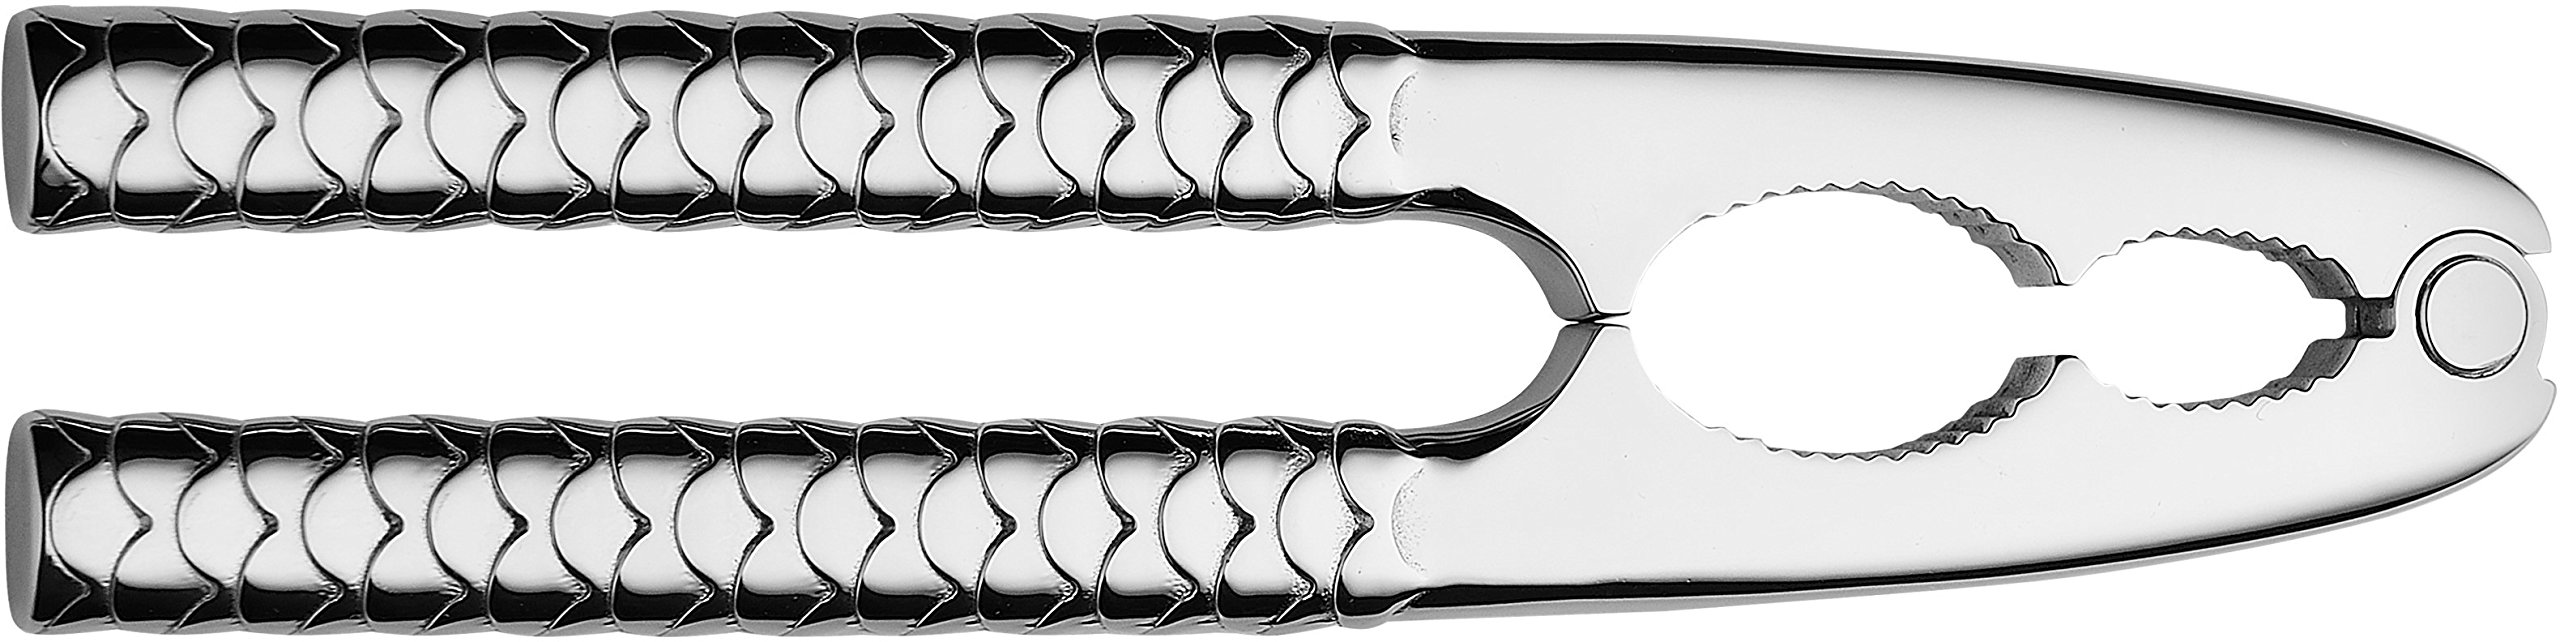 Alessi ''Colombina fish'' Shellfish Cracker in 18/10 Stainless Steel Mirror Polished, Silver